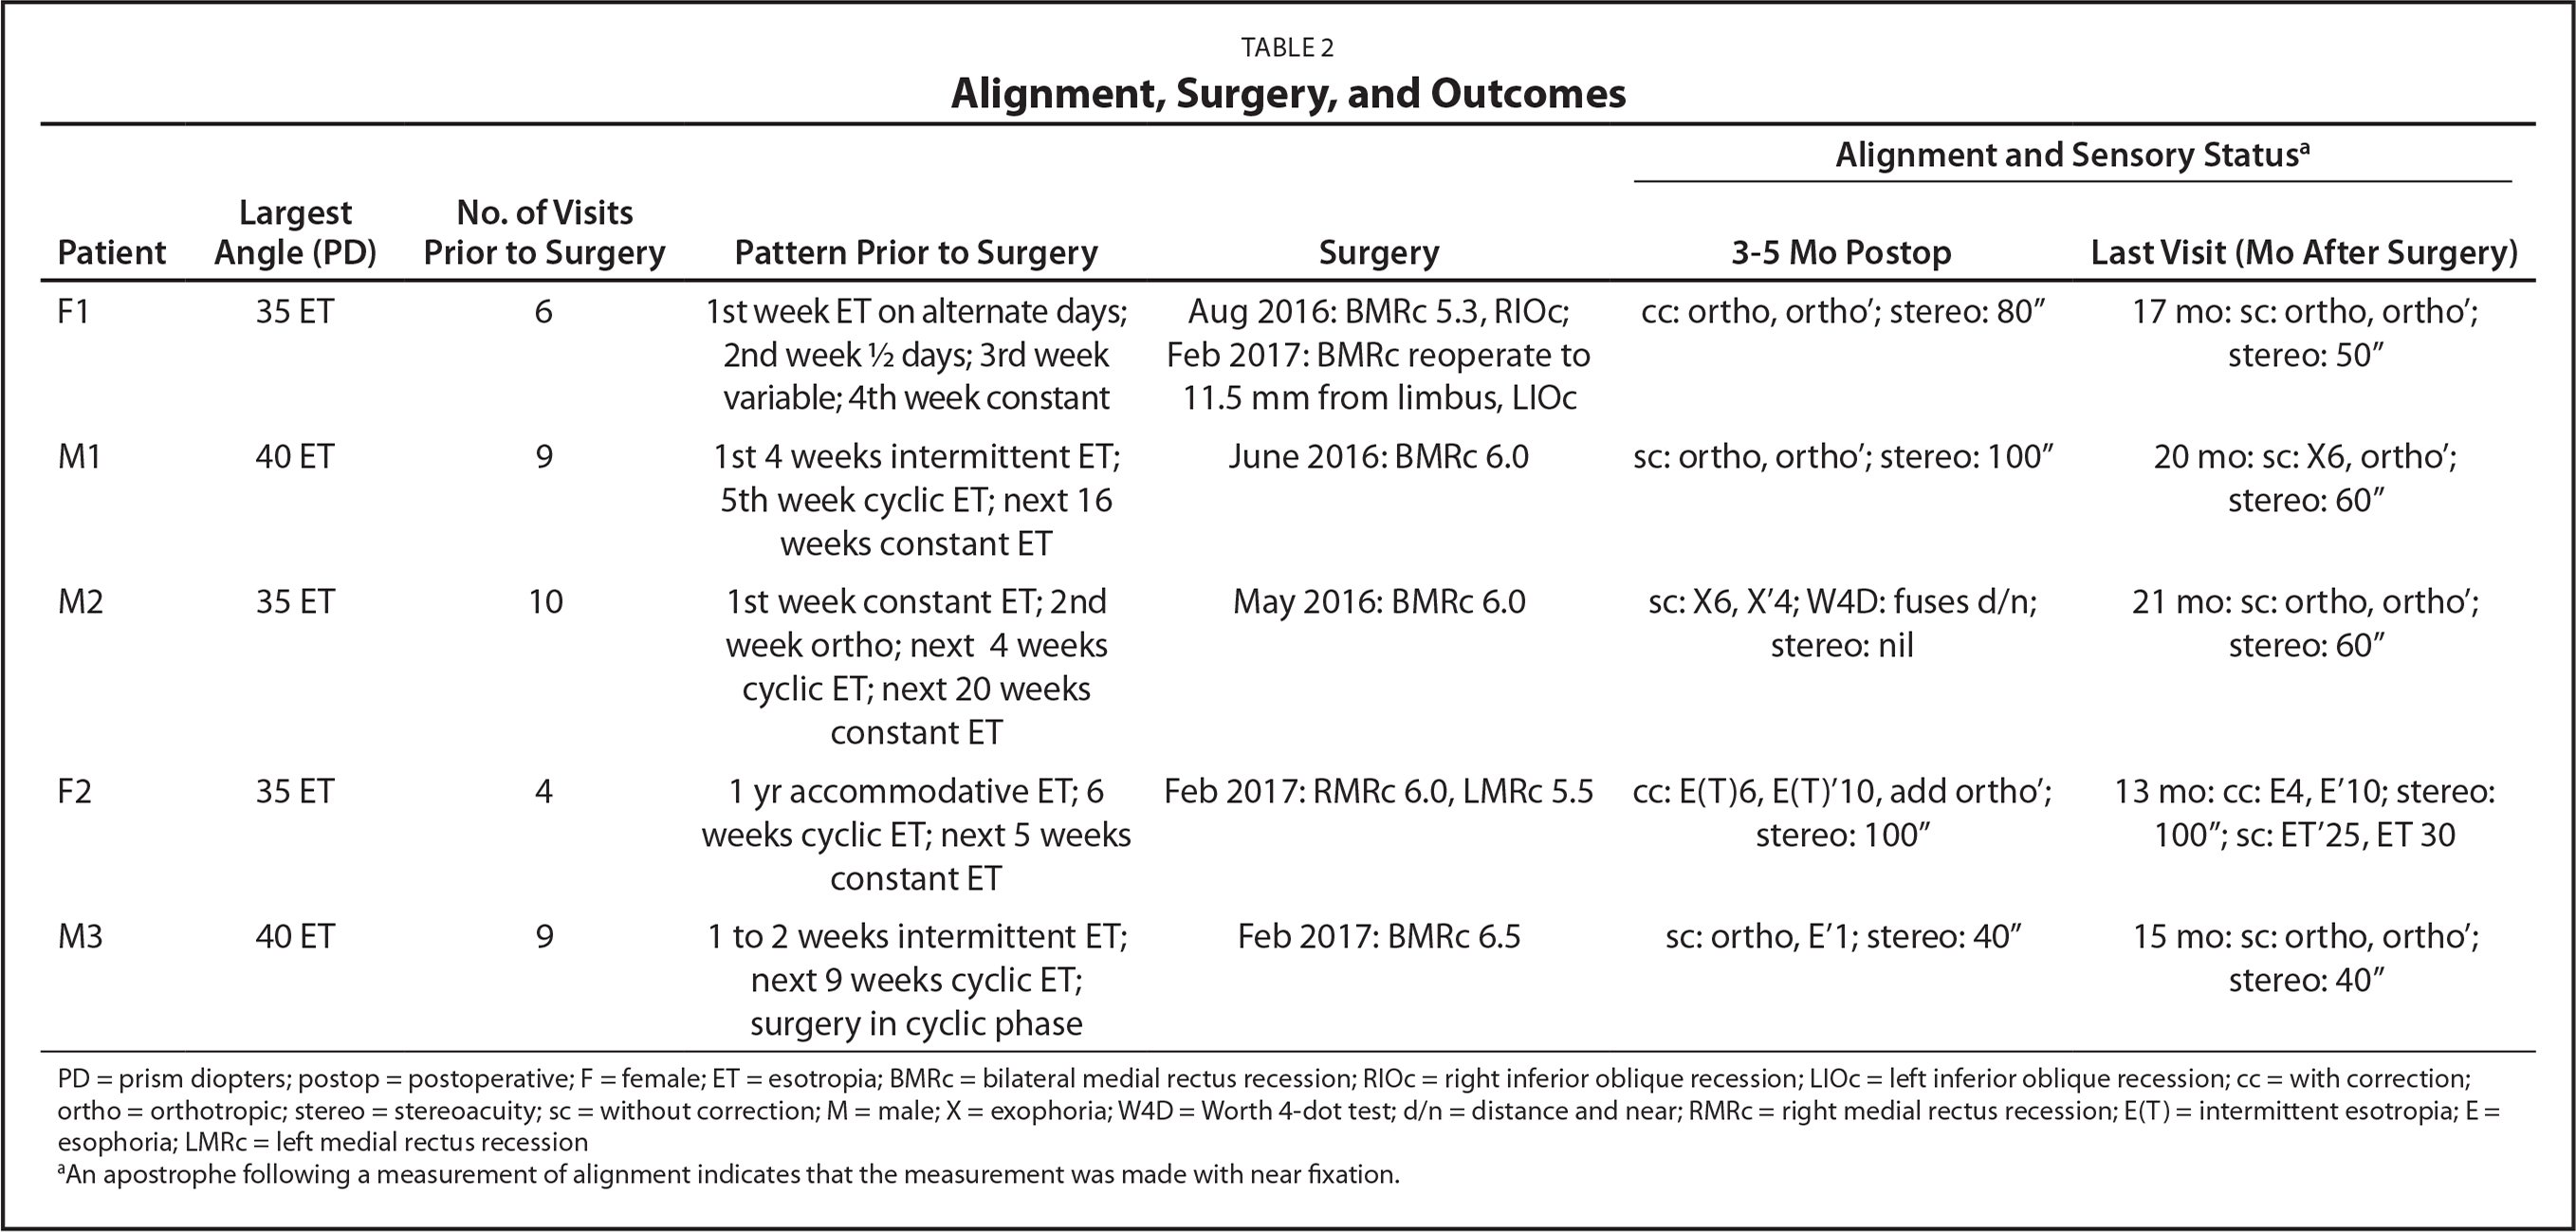 Alignment, Surgery, and Outcomes